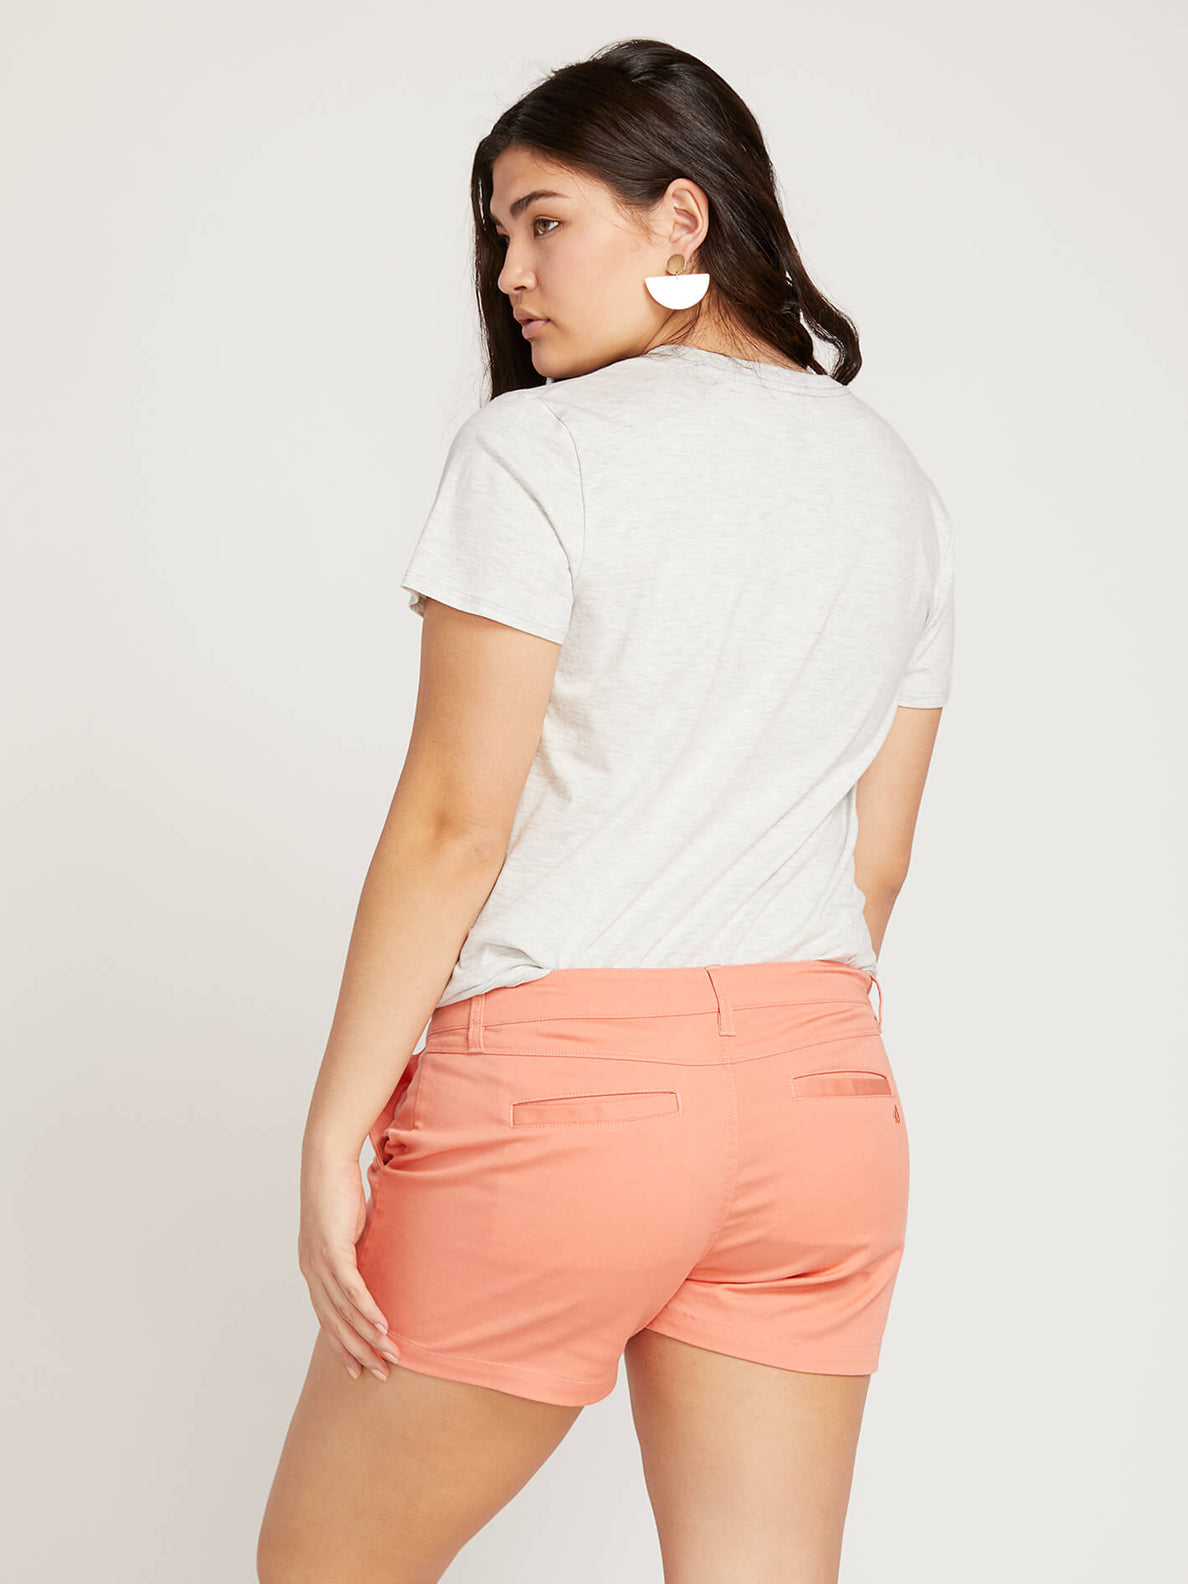 Frochickie Shorts In Terra Cotta, Back Extended Size View